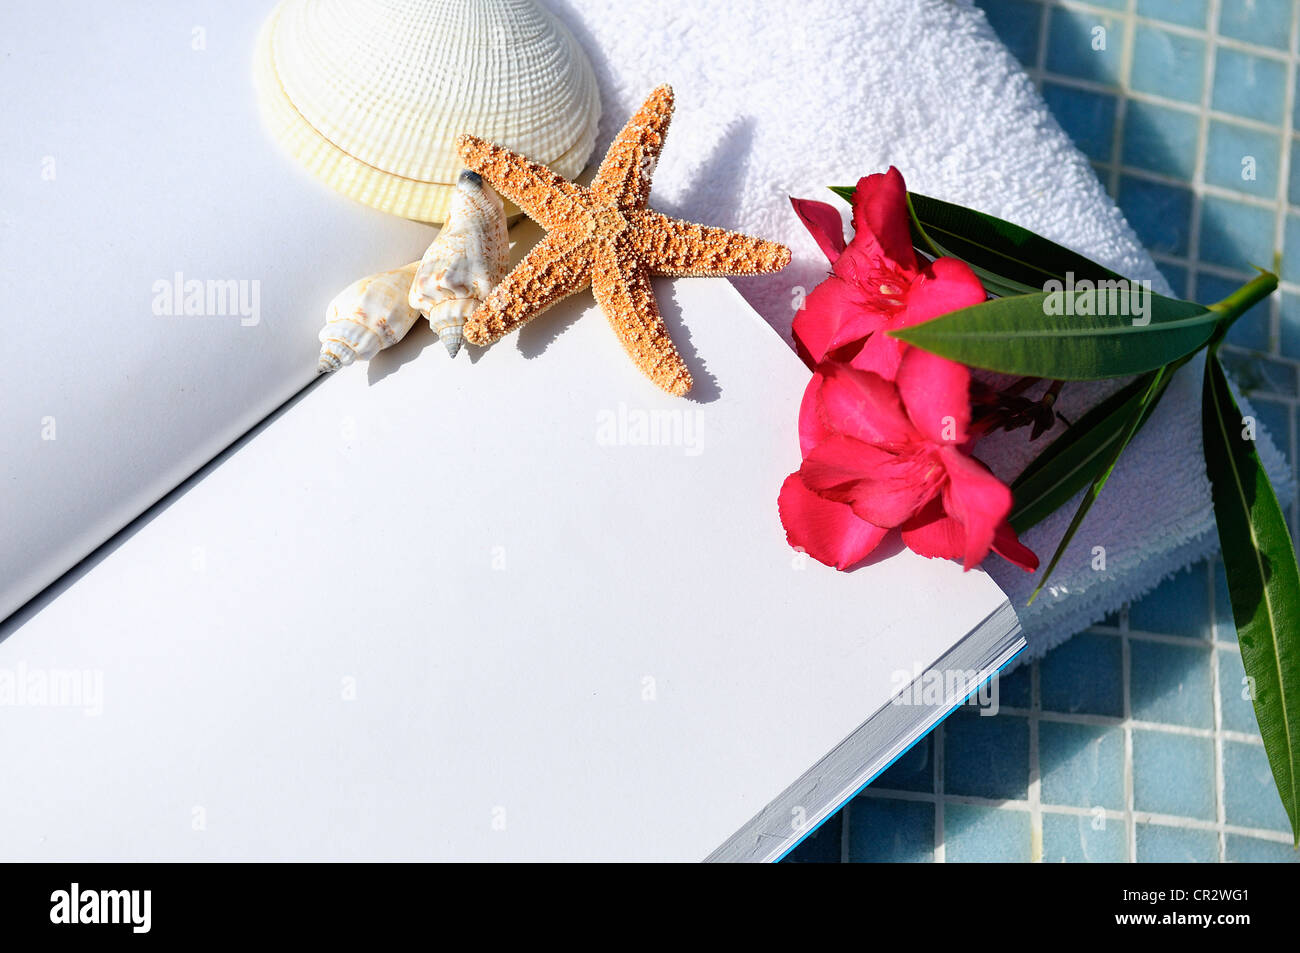 open book, shellfish and white towel beside a pool - Stock Image